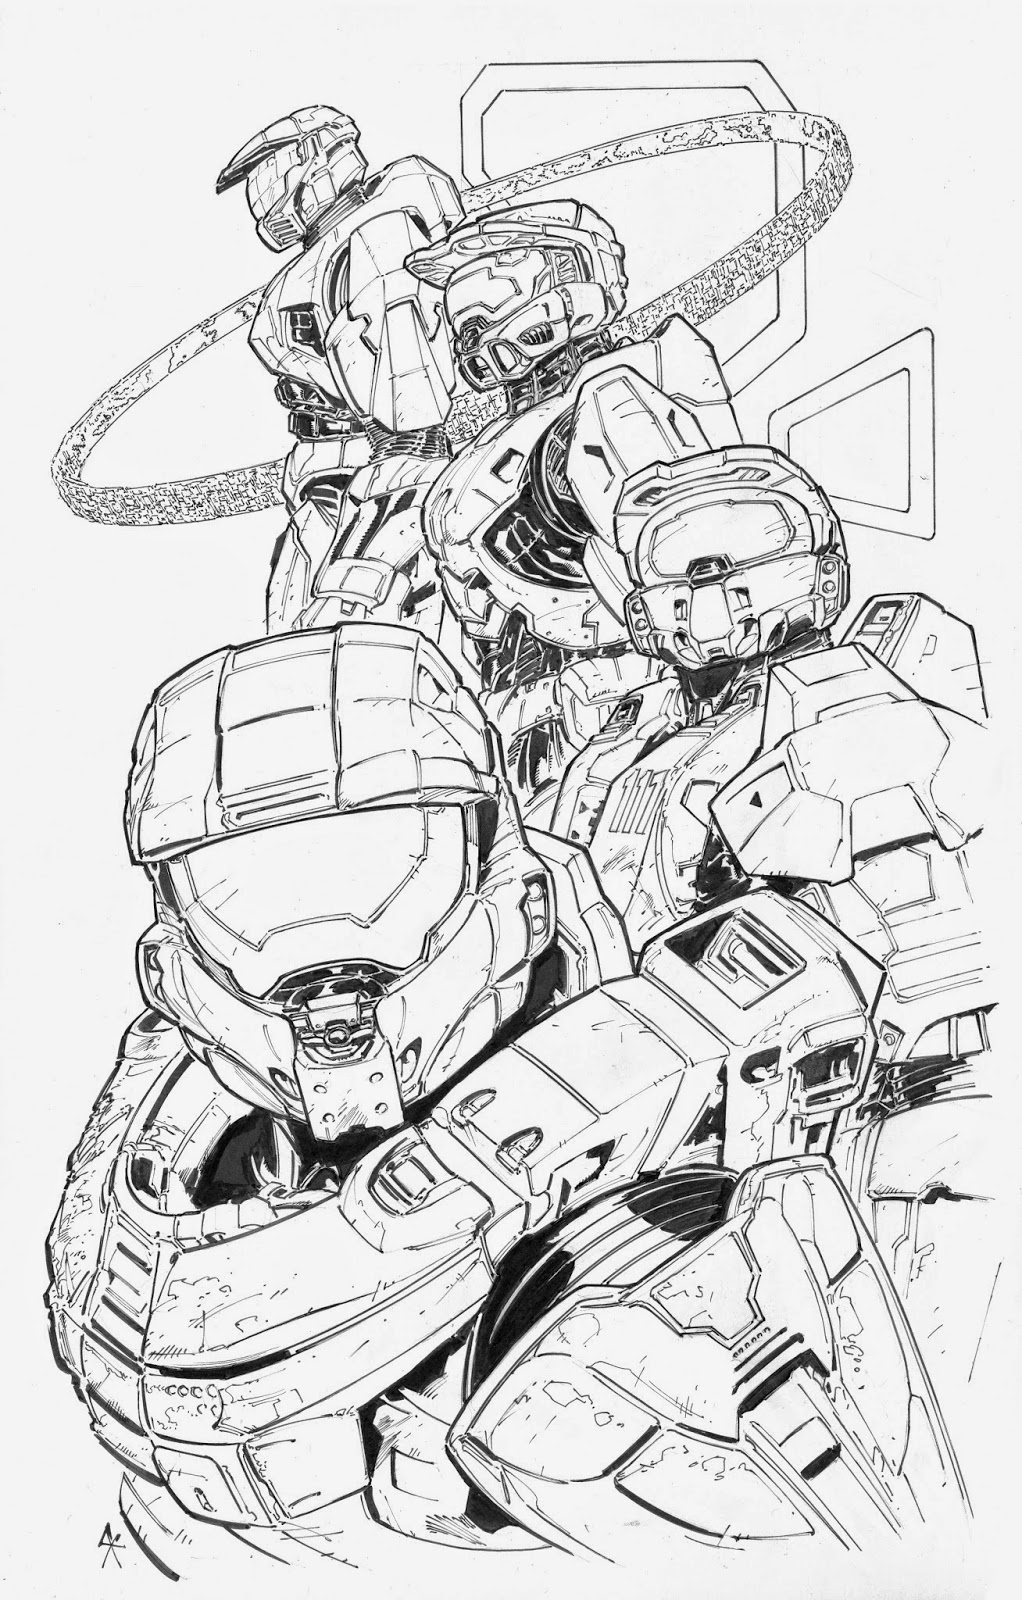 1022x1600 Halo, The Master Chief, Iterations. Original Master Chief, Halo 2